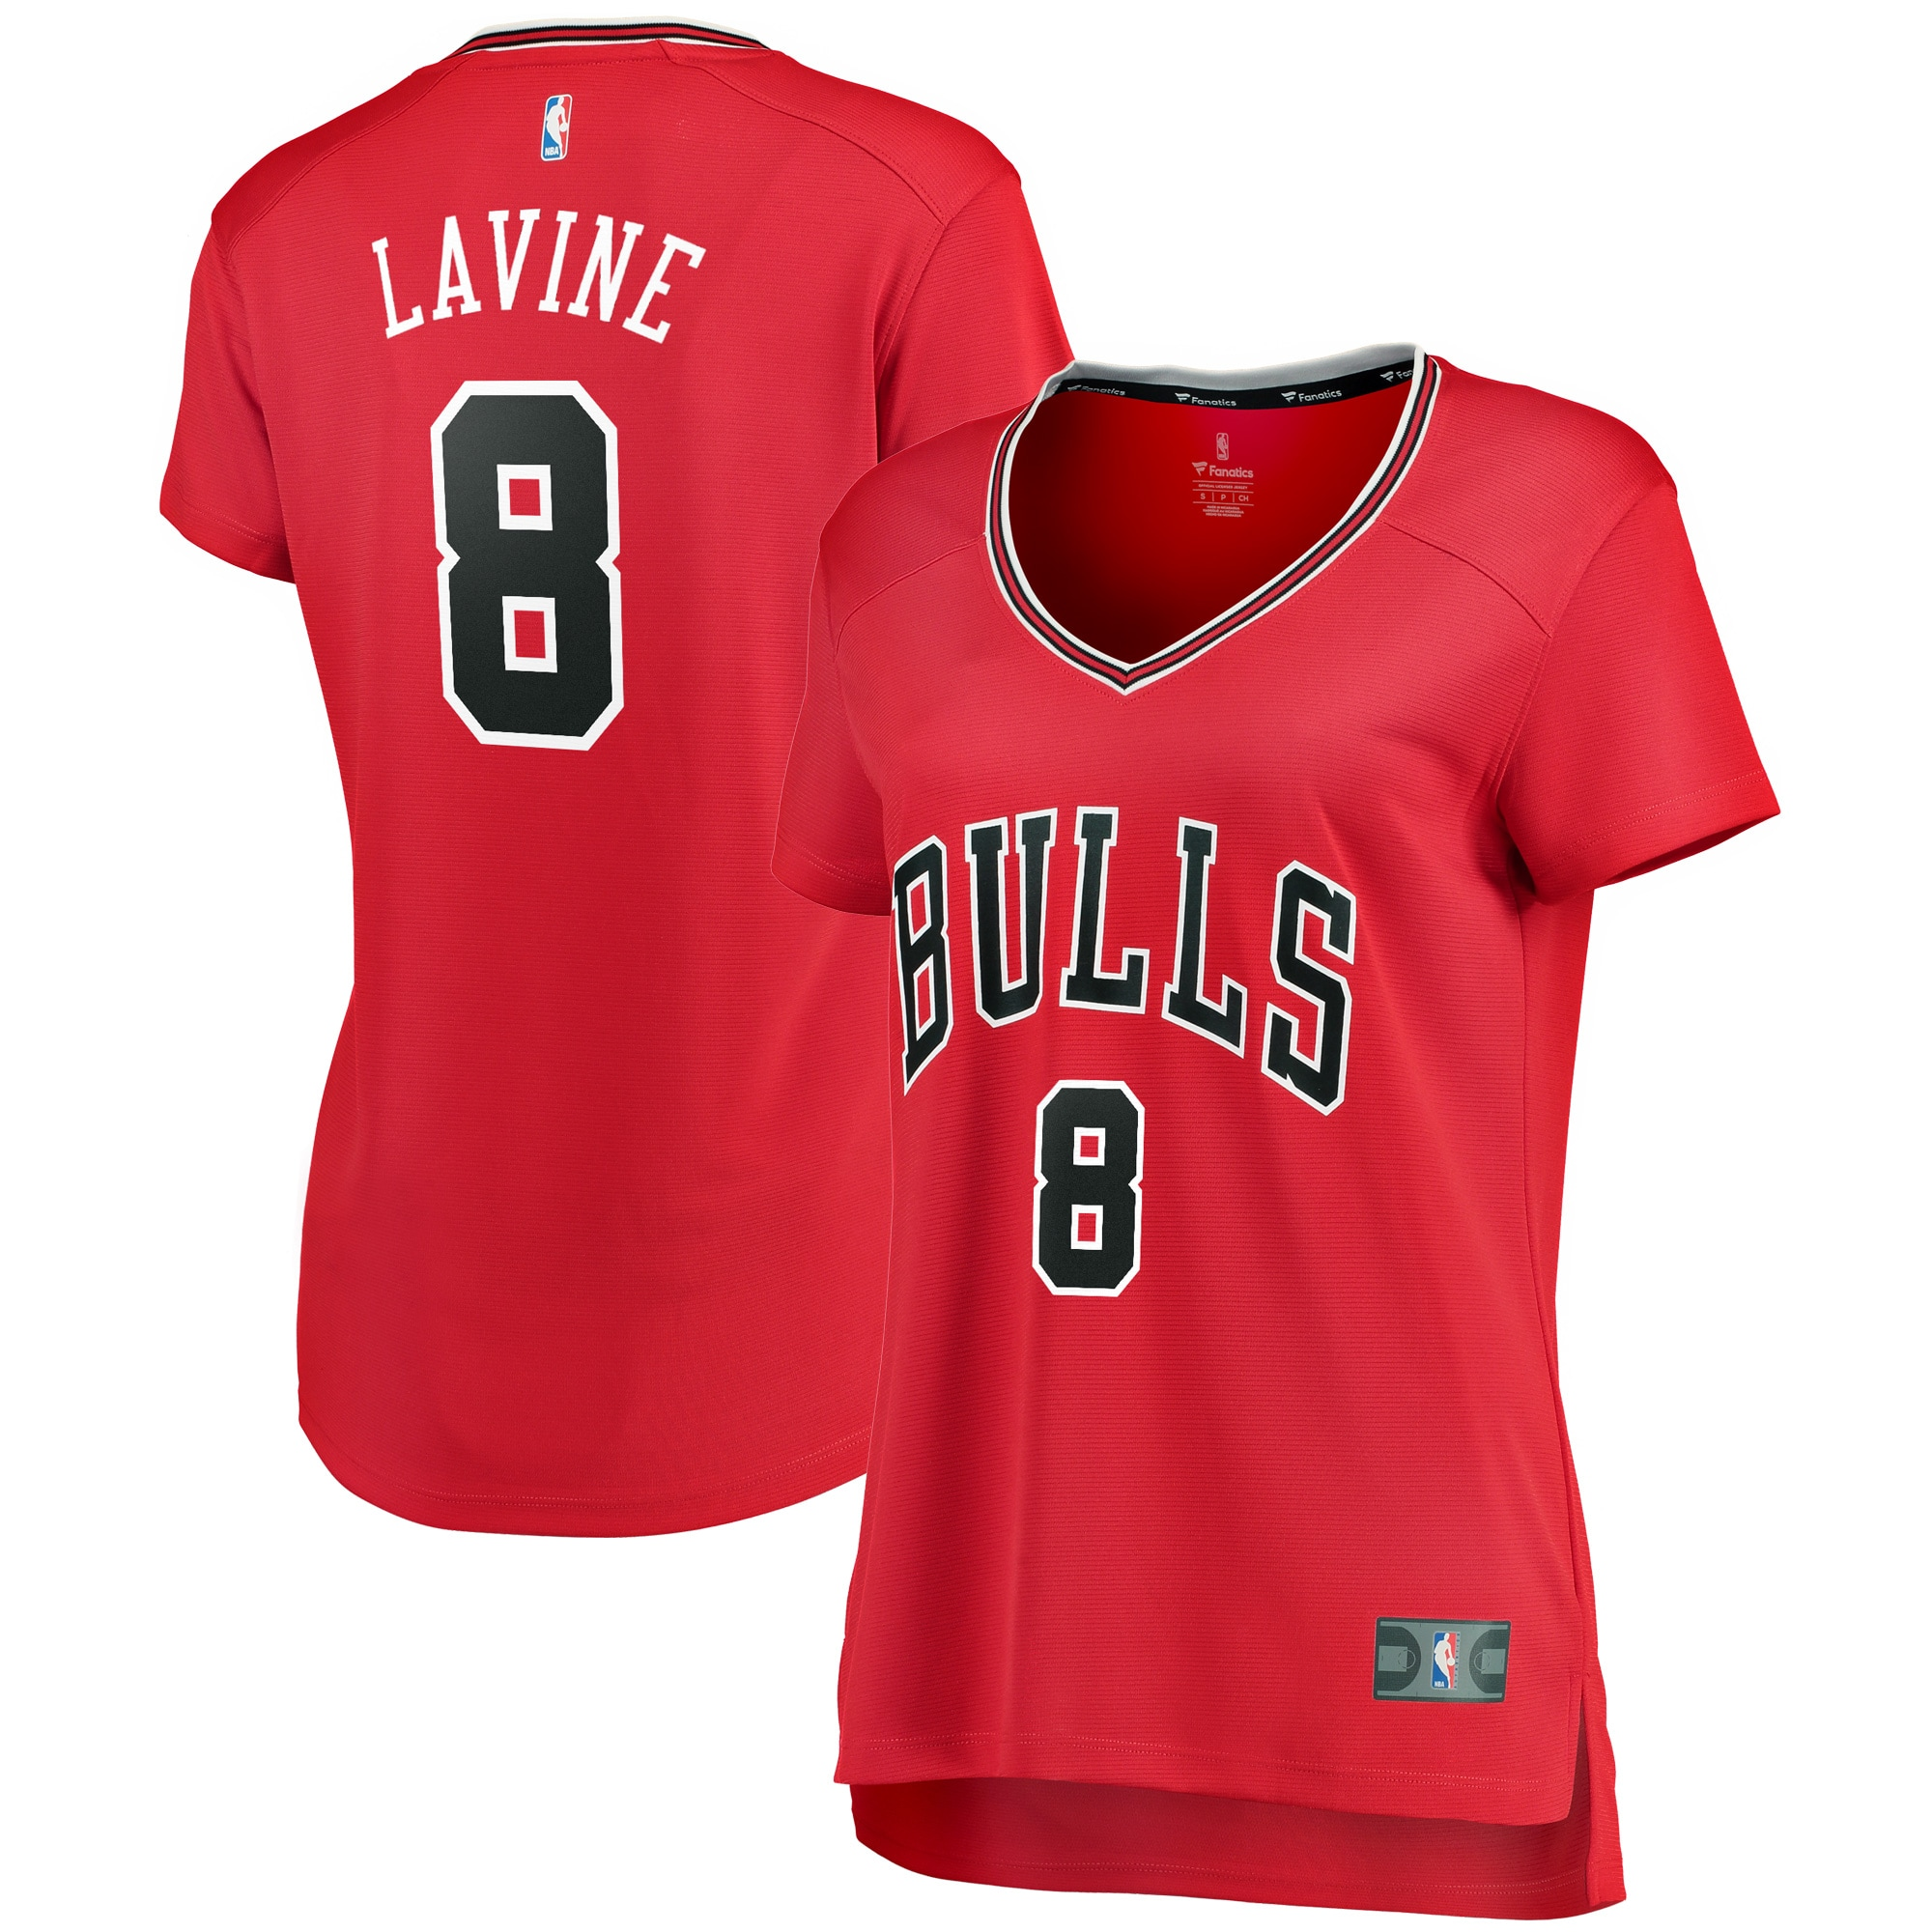 Zach LaVine Chicago Bulls Fanatics Branded Women's Fast Break Jersey Red - Icon Edition